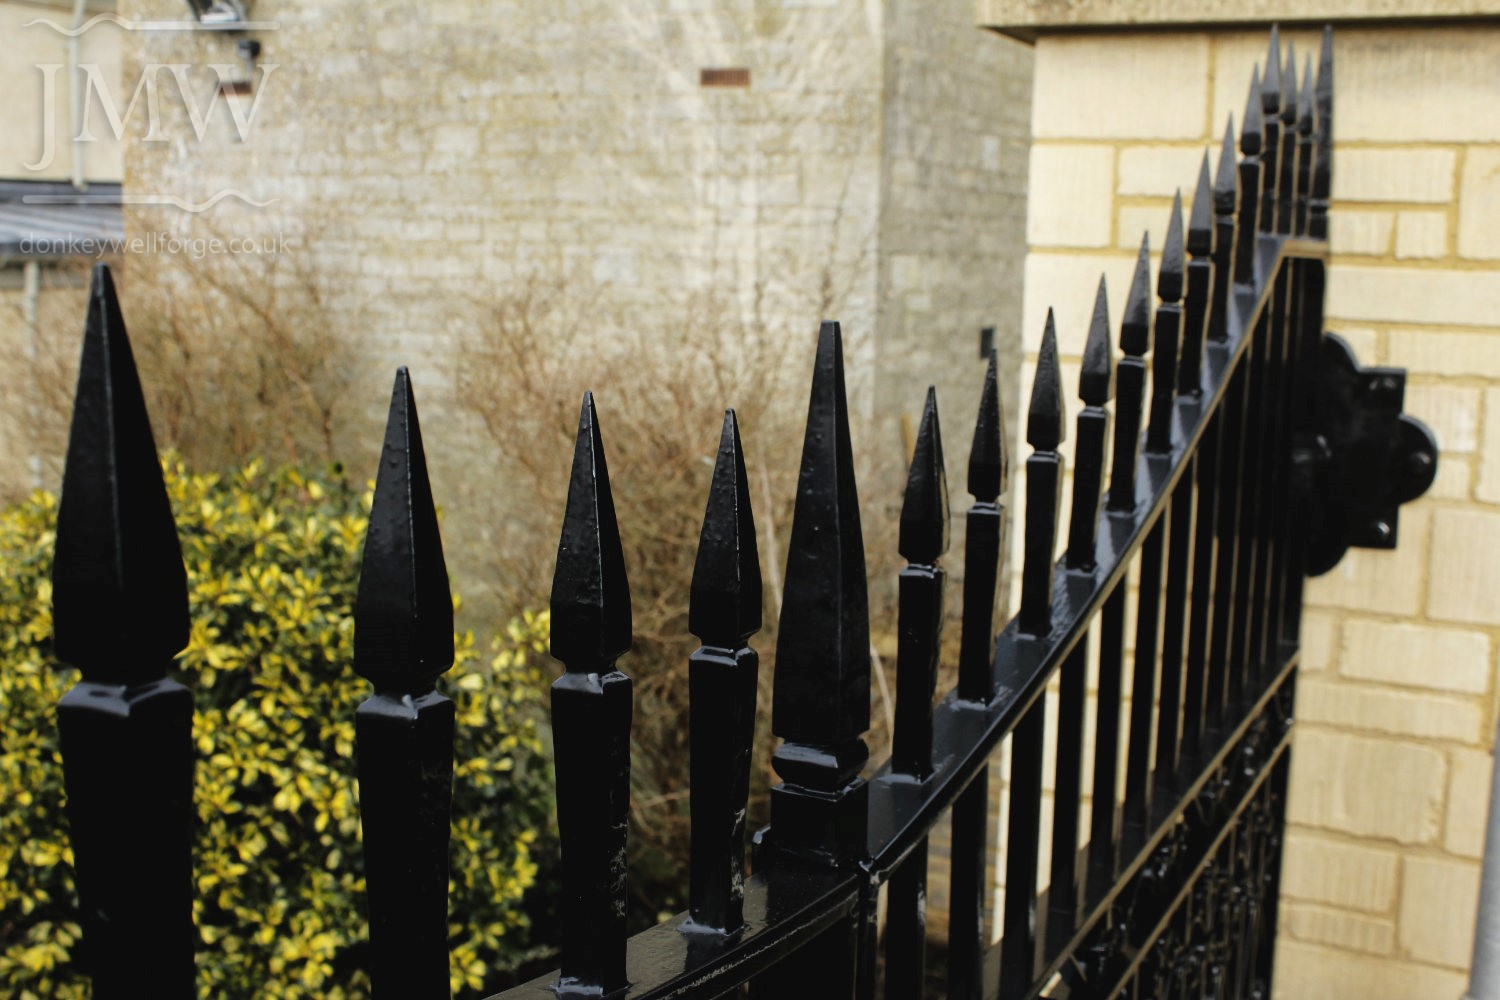 country-estate-garden-gates-scrolls-bespoke-ironwork-forge-blacksmith-cotswolds-top-spikes-donkeywell-forge